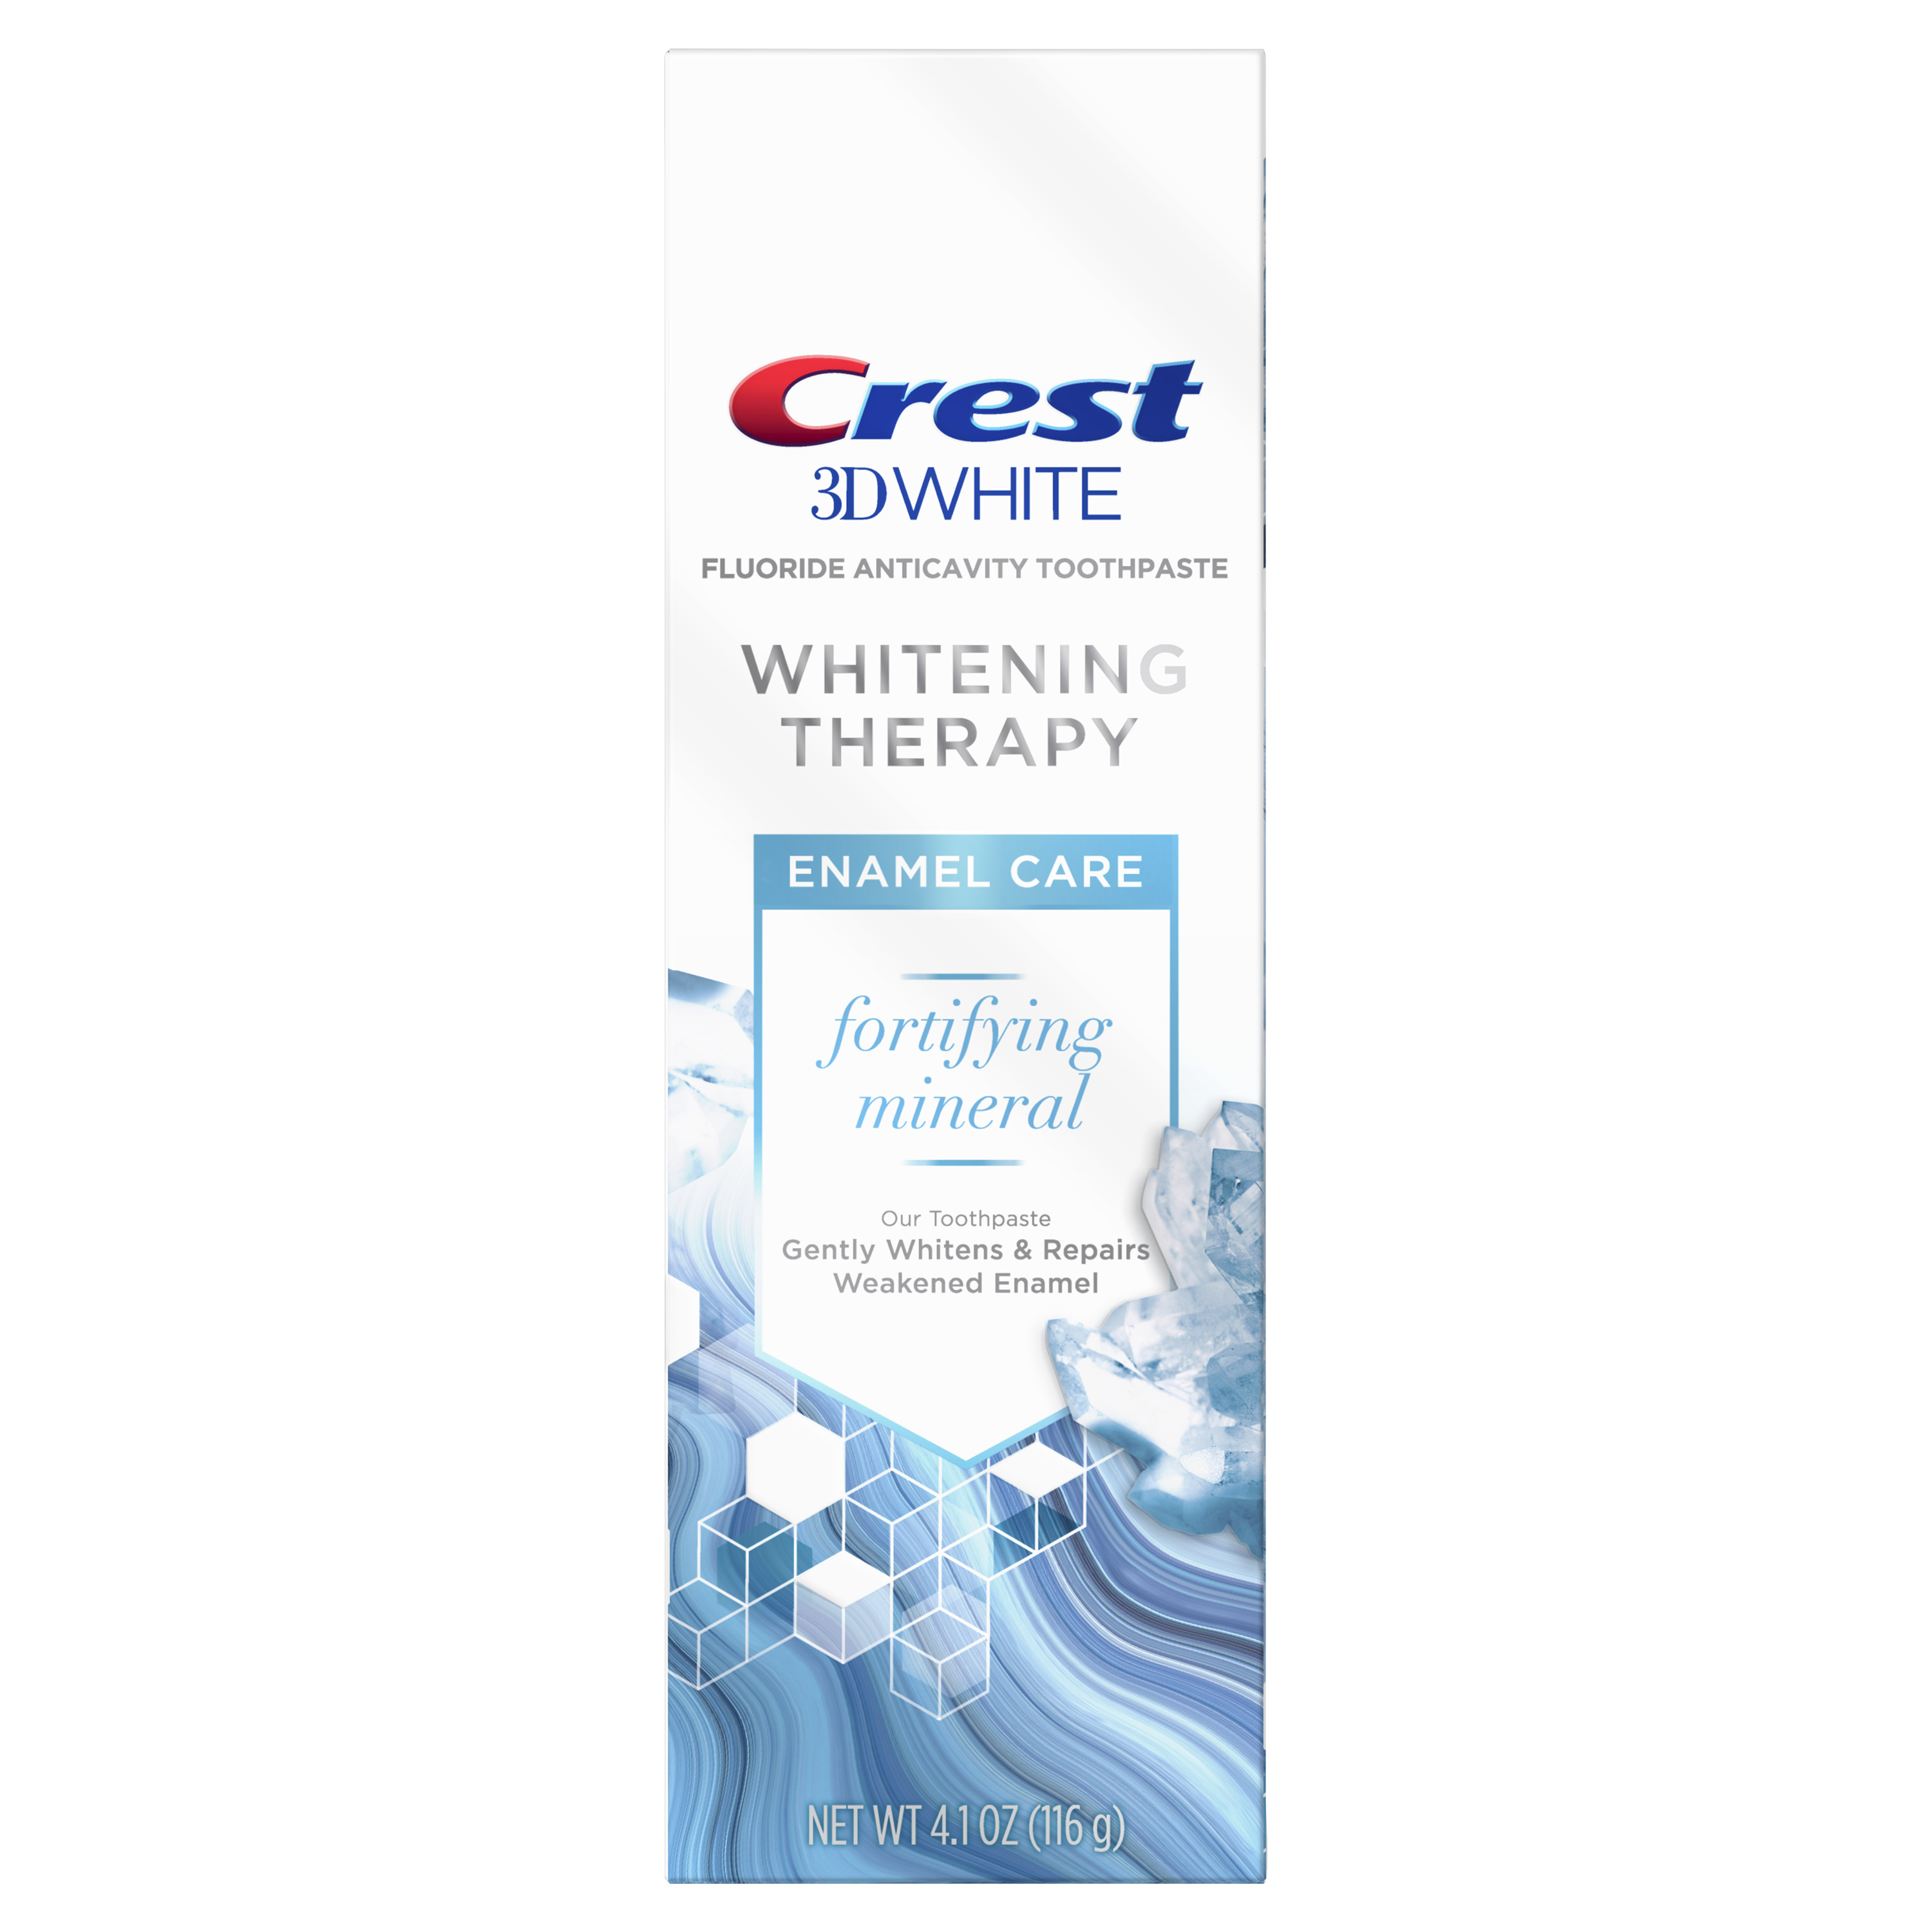 Crest 3D White Whitening Therapy Enamel Care Fluoride